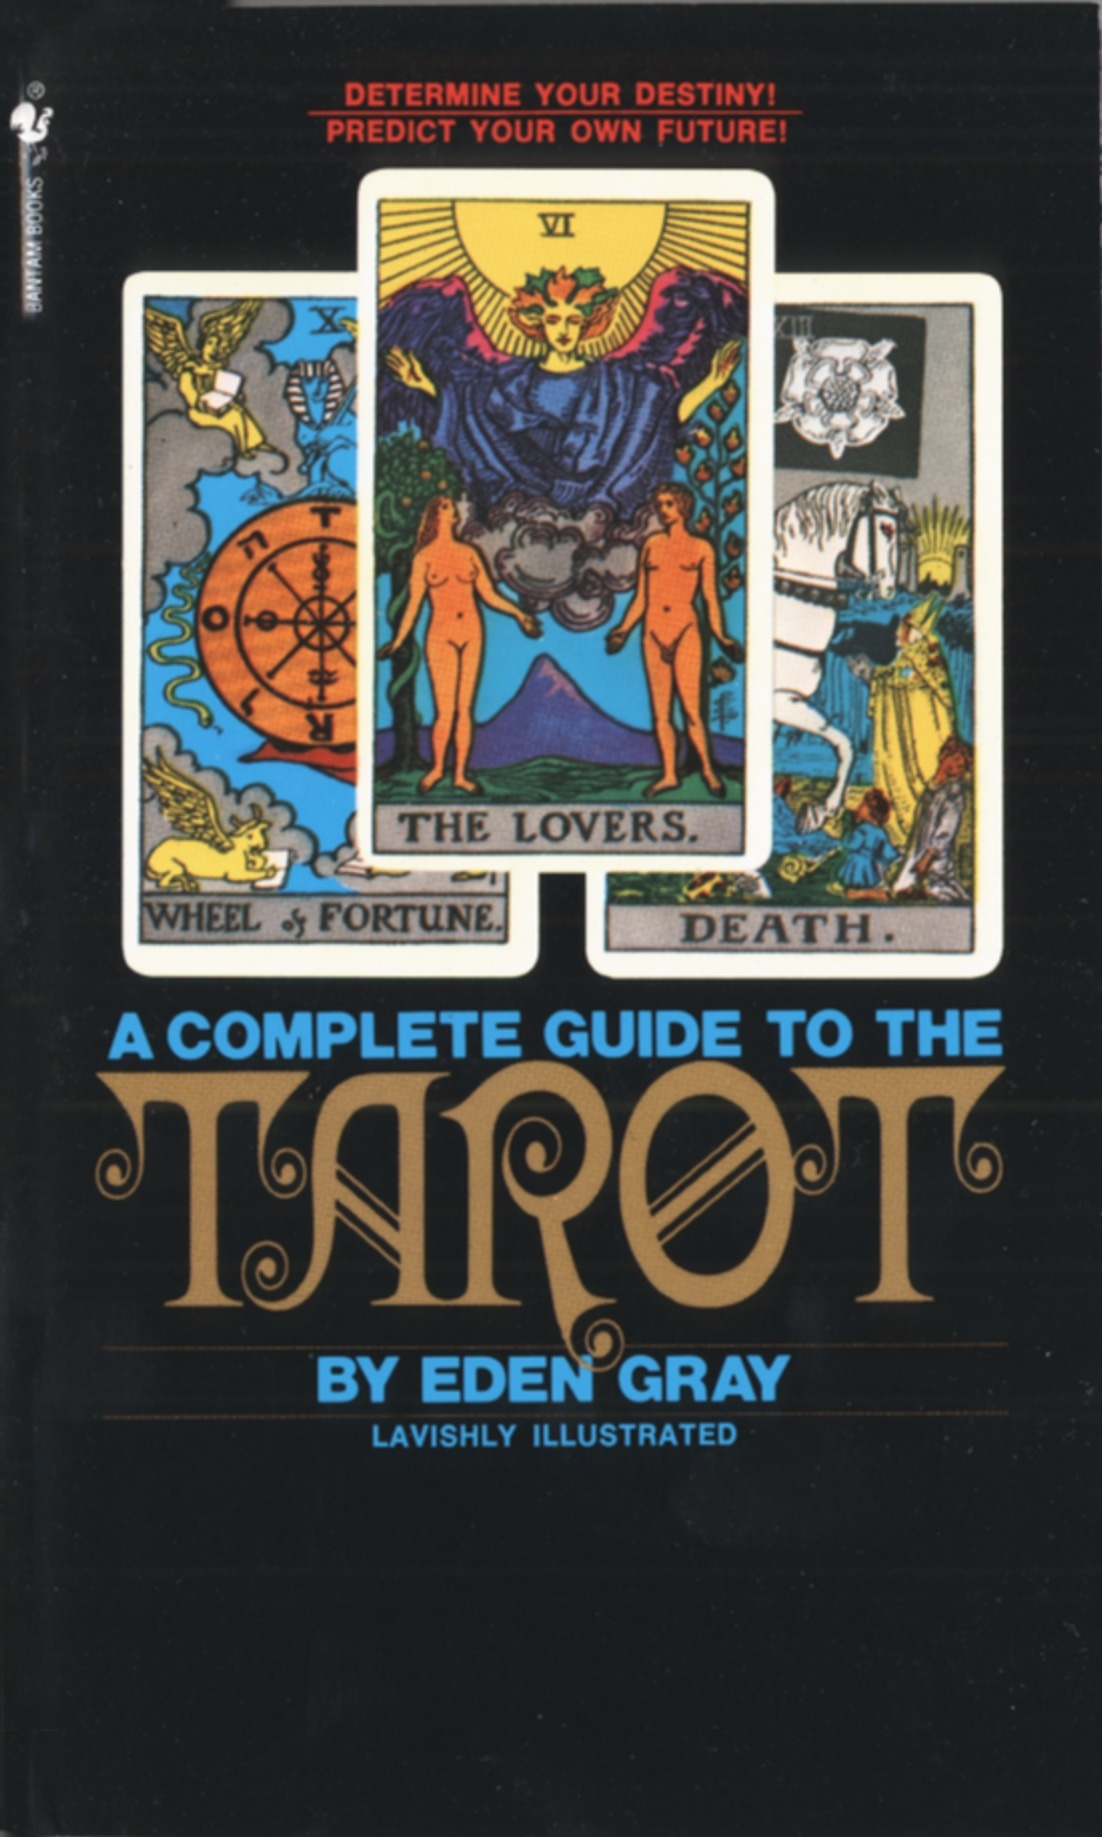 Compl Guide To The Tarot by Eden Gray, ISBN: 9780553277524